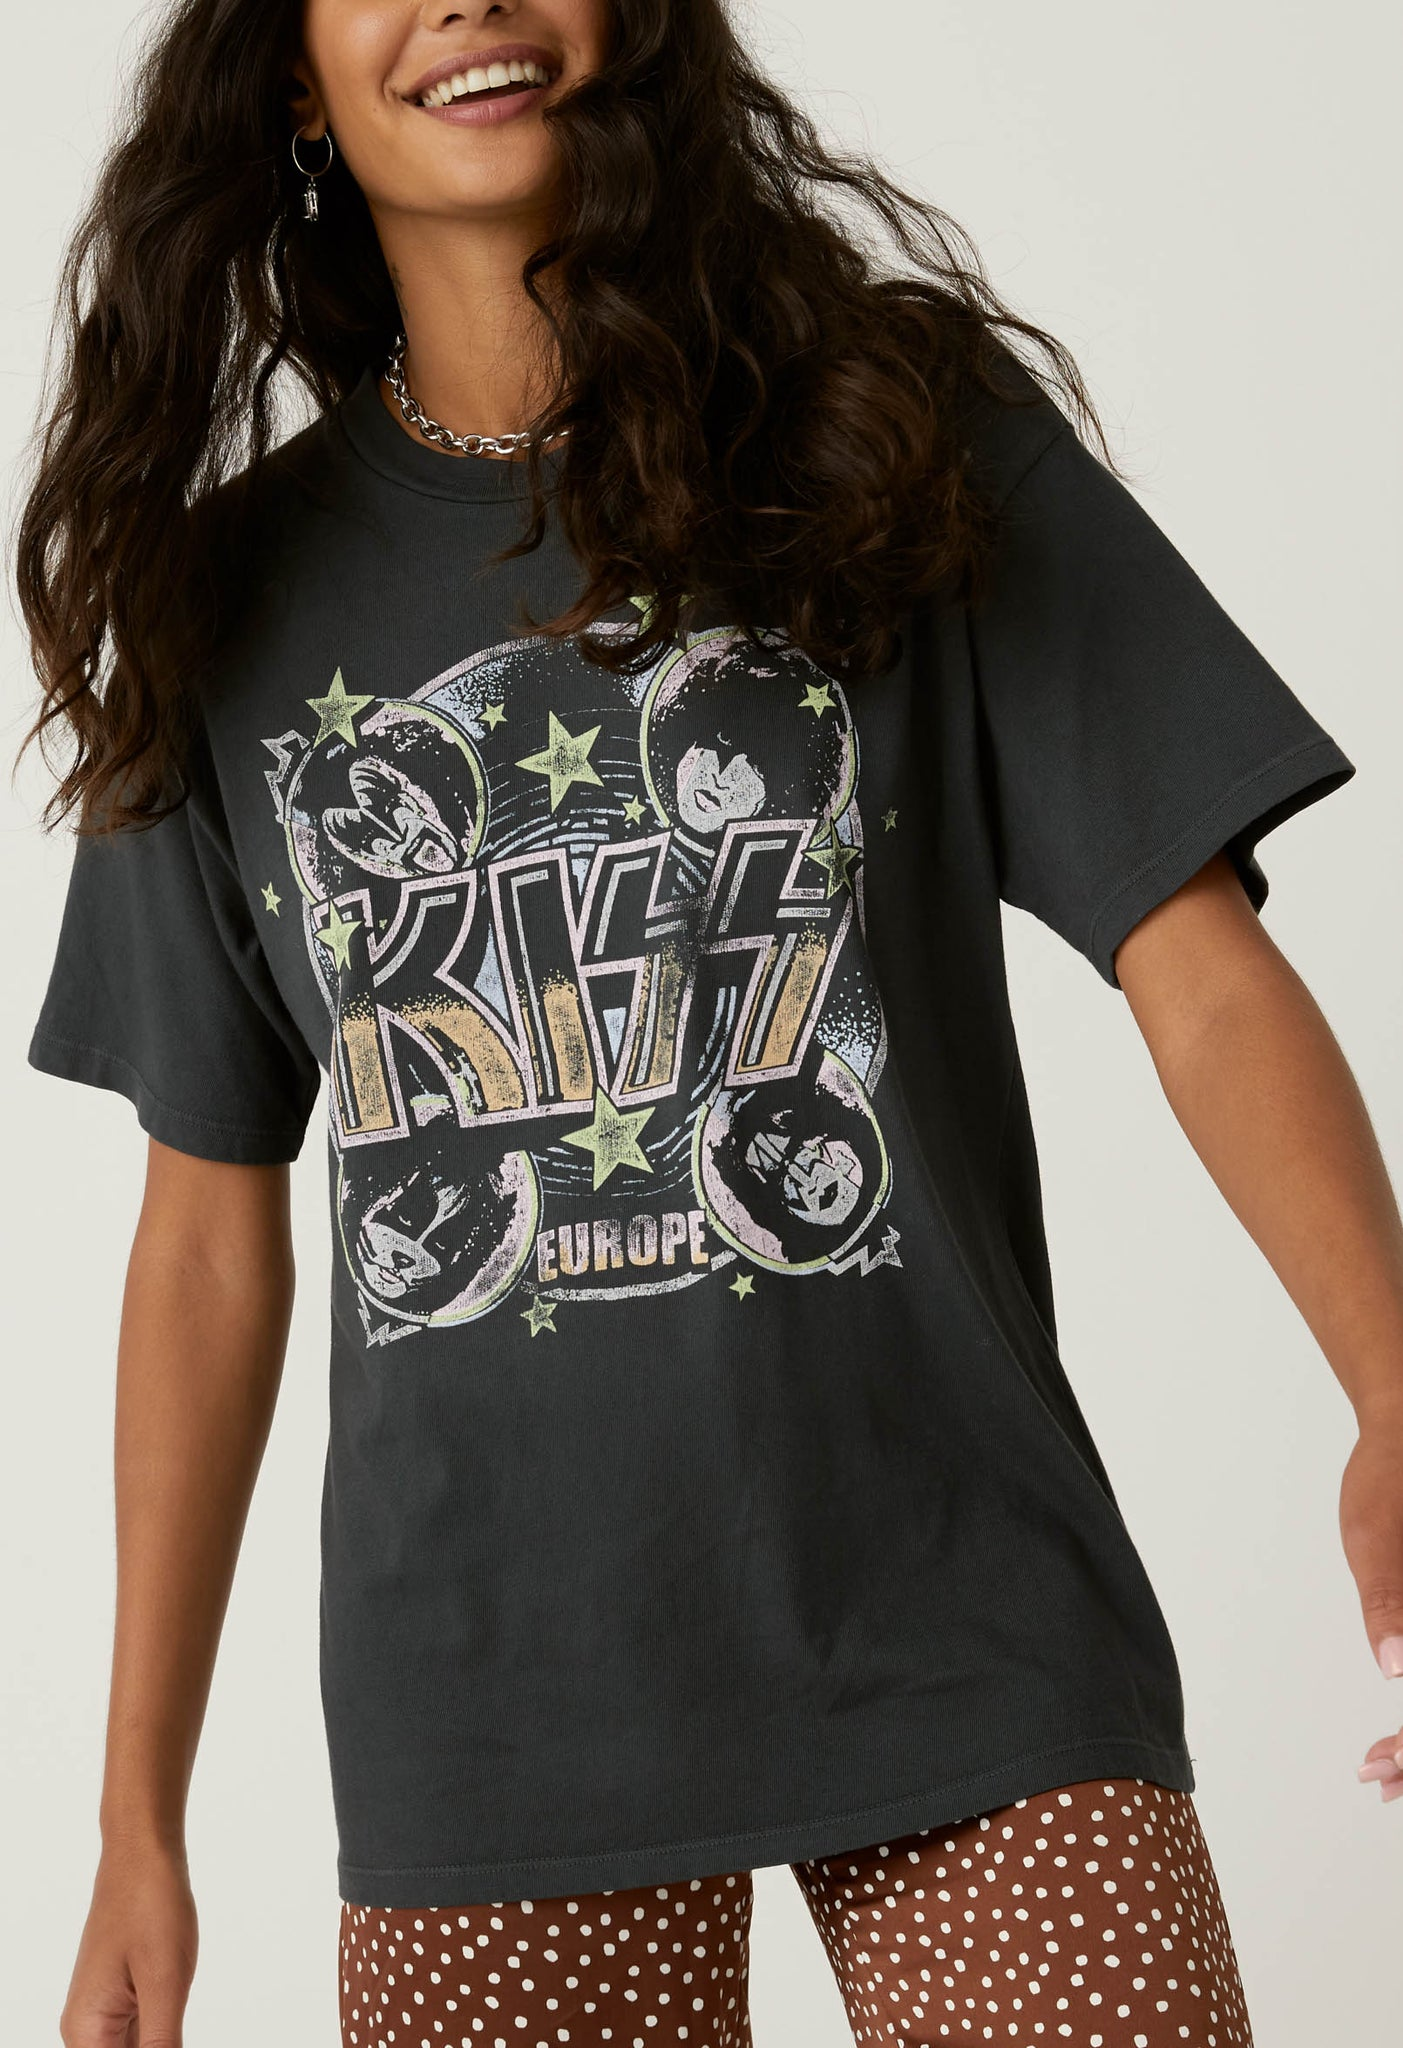 Kiss Sonic Boom Weekend Tee in Vintage Black